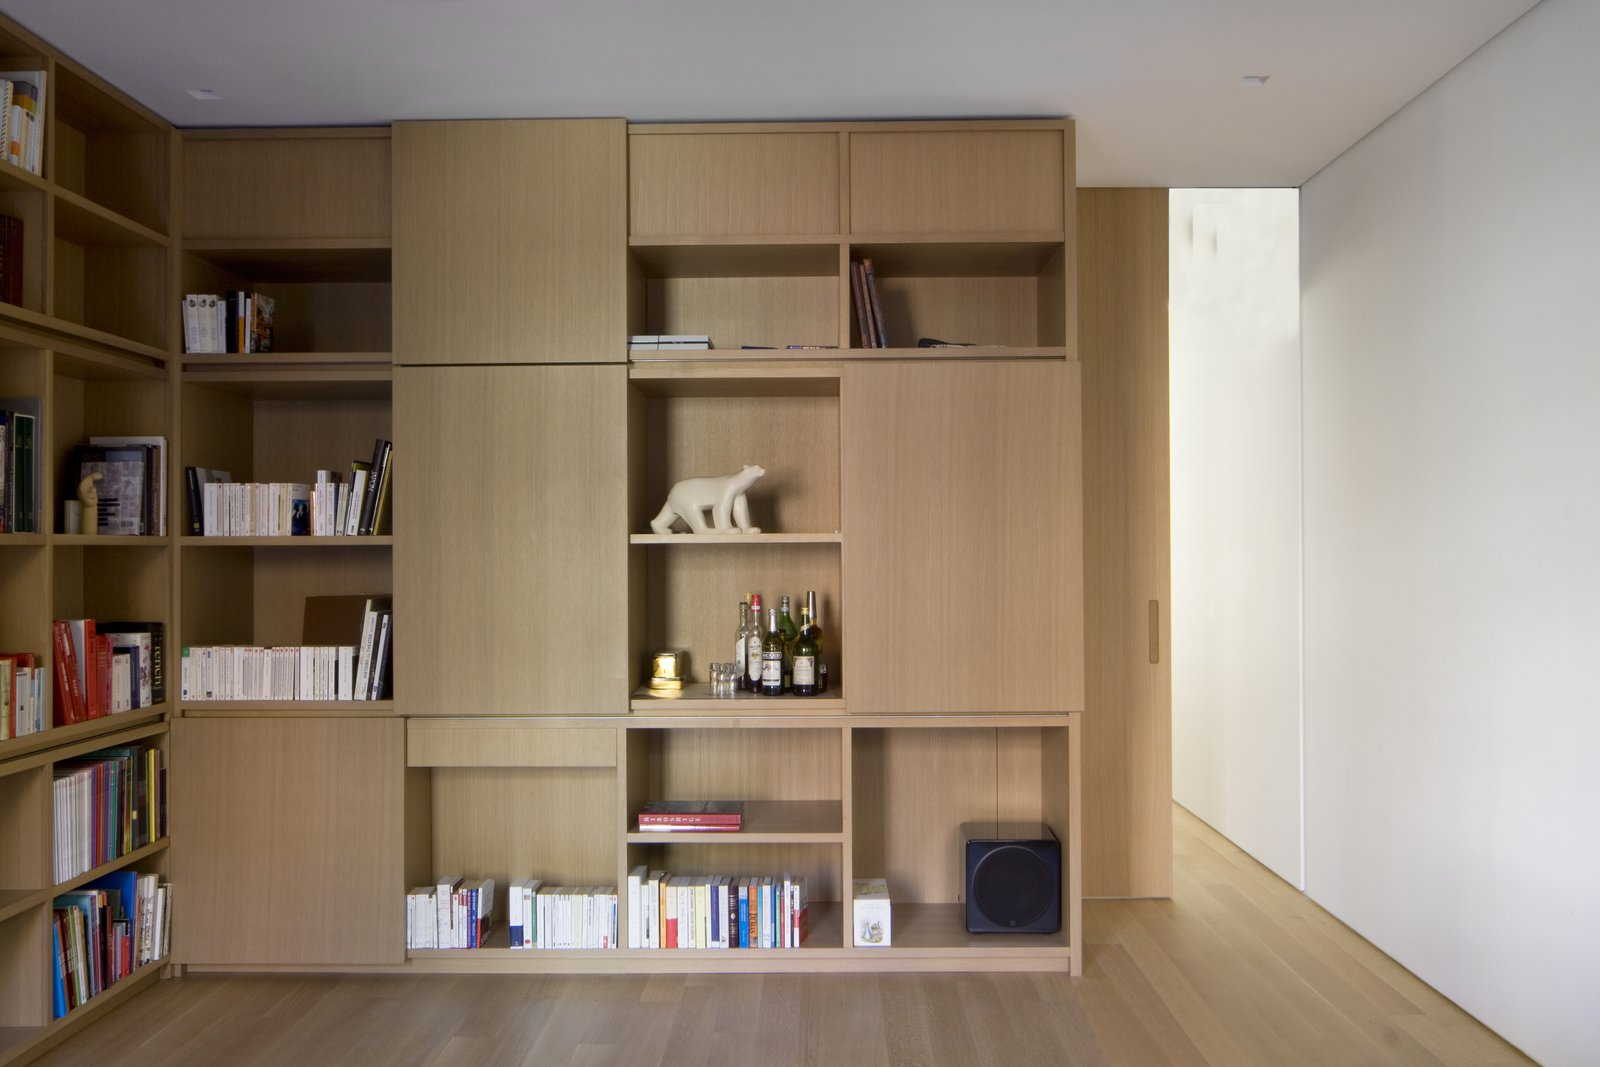 More custom millwork features asymmetrical shelving and closed storage spaces with sliding panels on HAFELE sliding tracks. A 10-inch matching pocket door provides privacy when desired without interrupting the space. Tagged: Storage Room and Shelves Storage Type.  White Oak by Maura Lucking